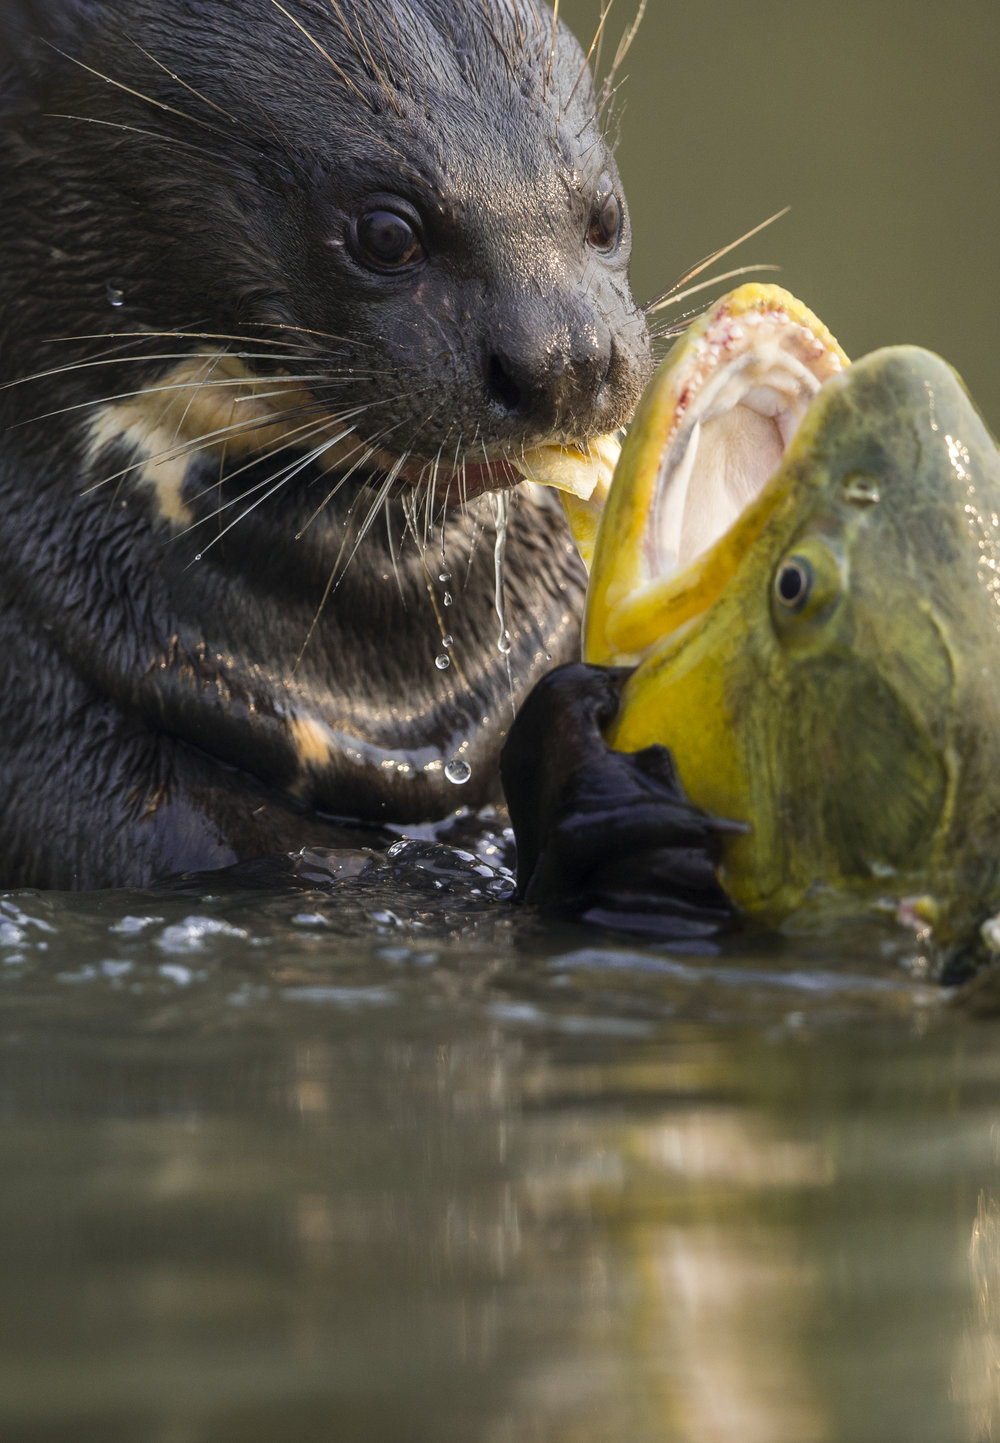 A giant river otter eats a Golden Dorado.